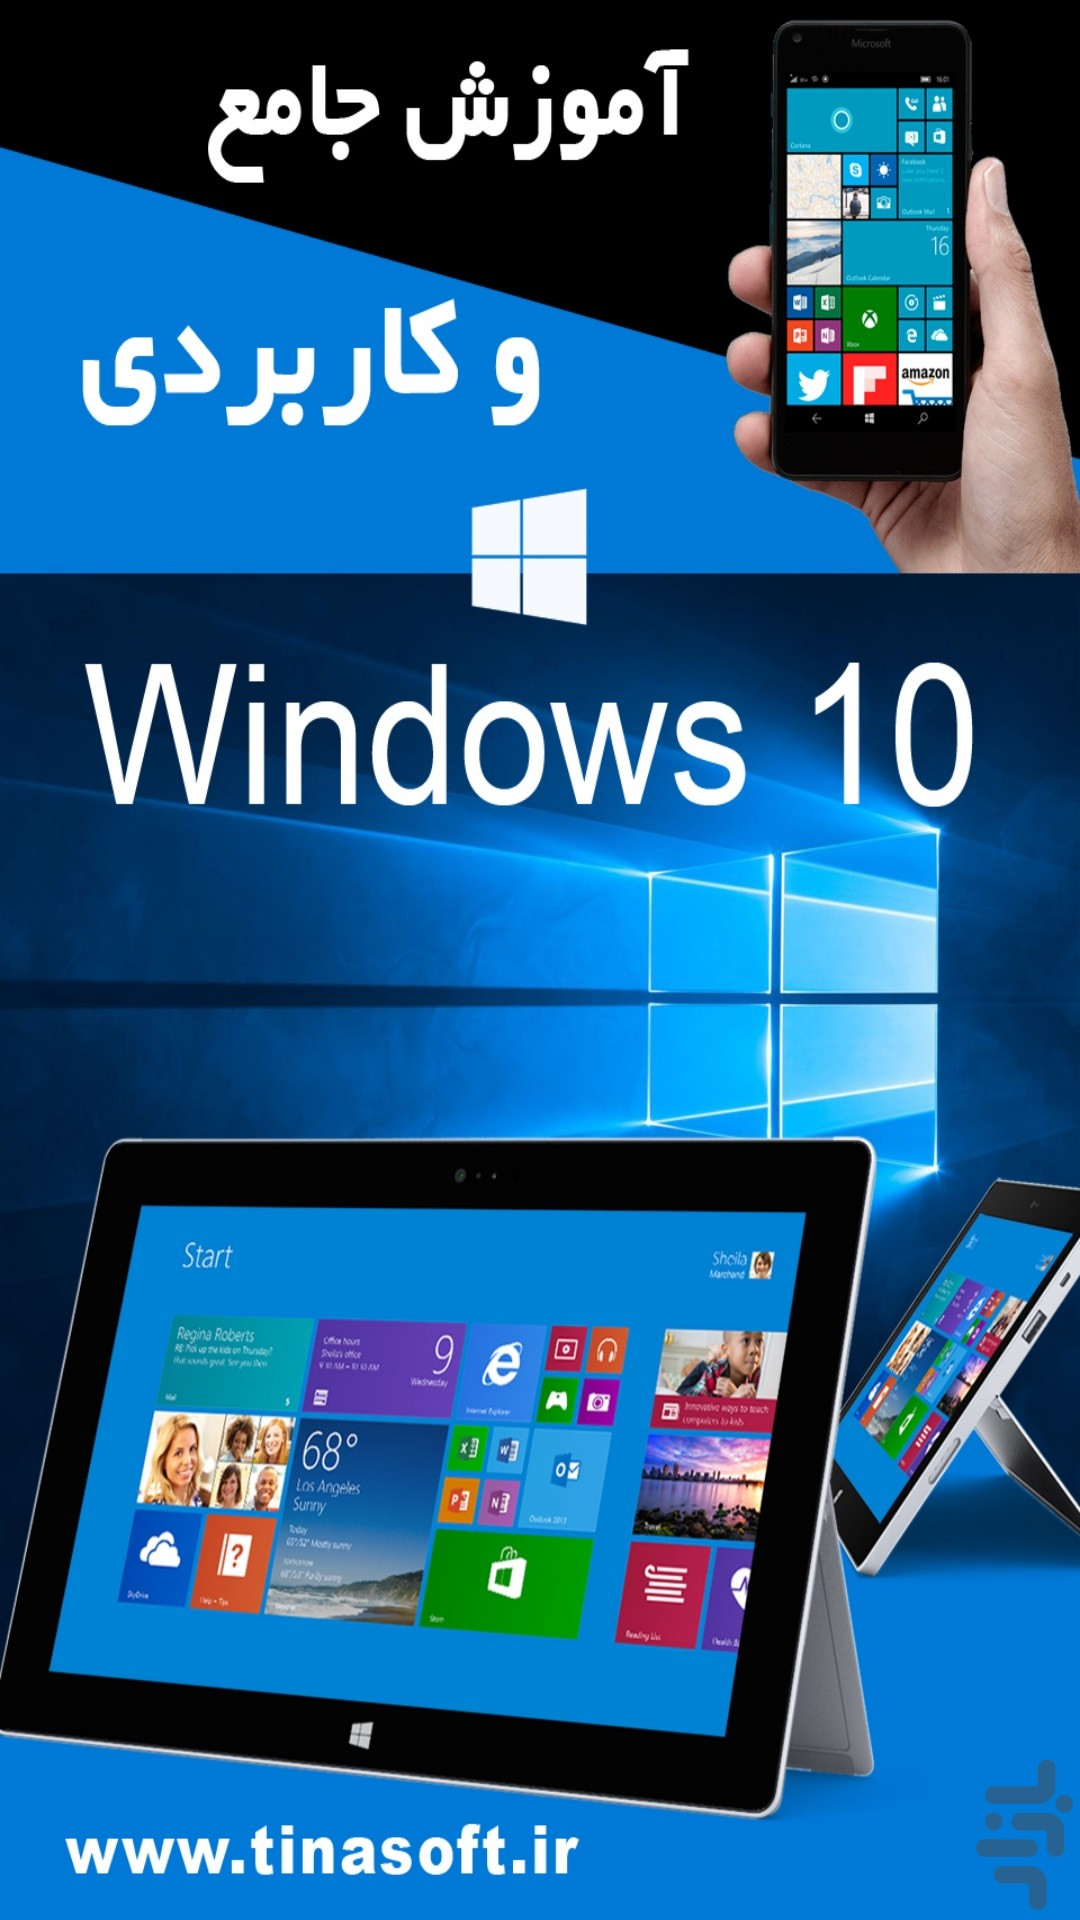 آموزش جامع  Windows 10 (فیلم)